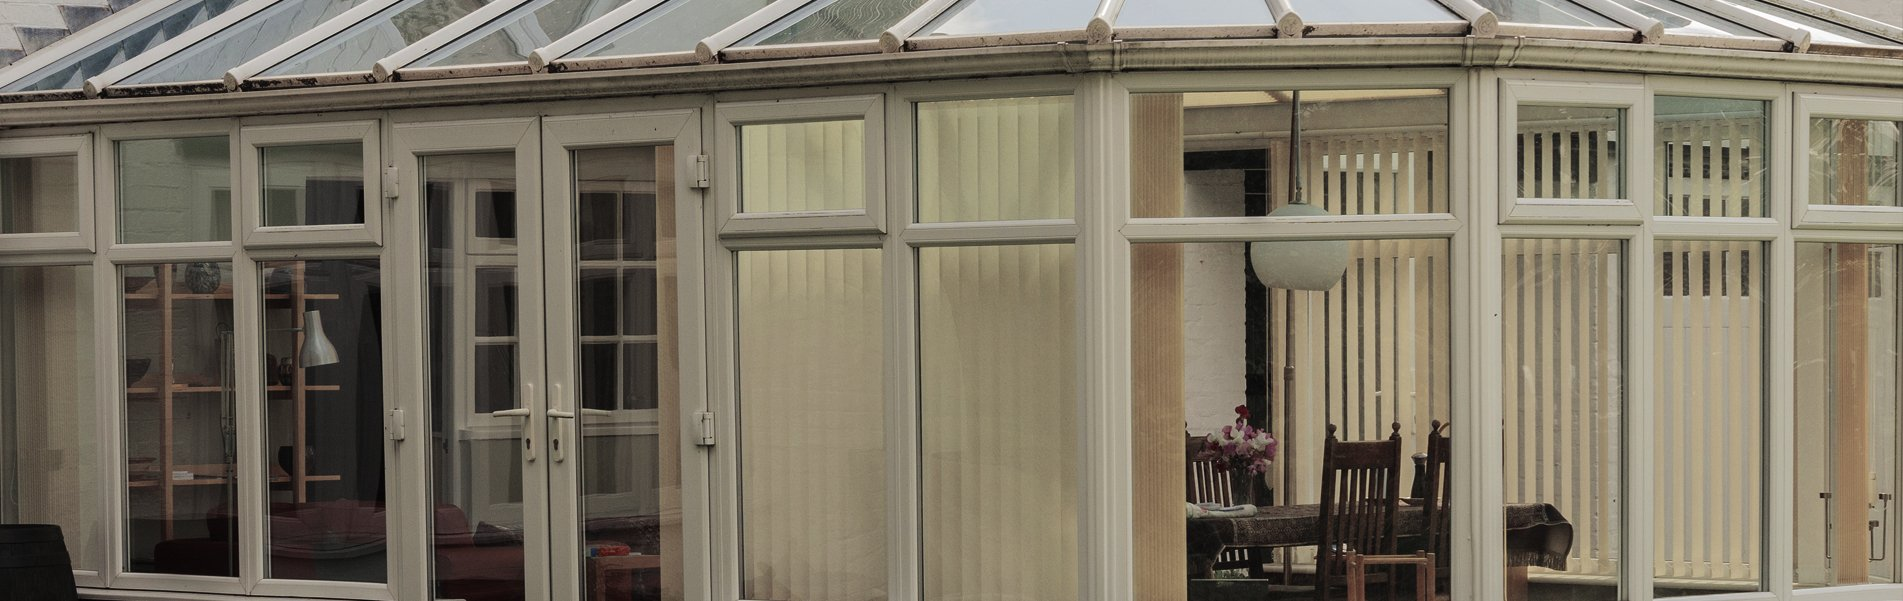 Wide image of a conservatory.